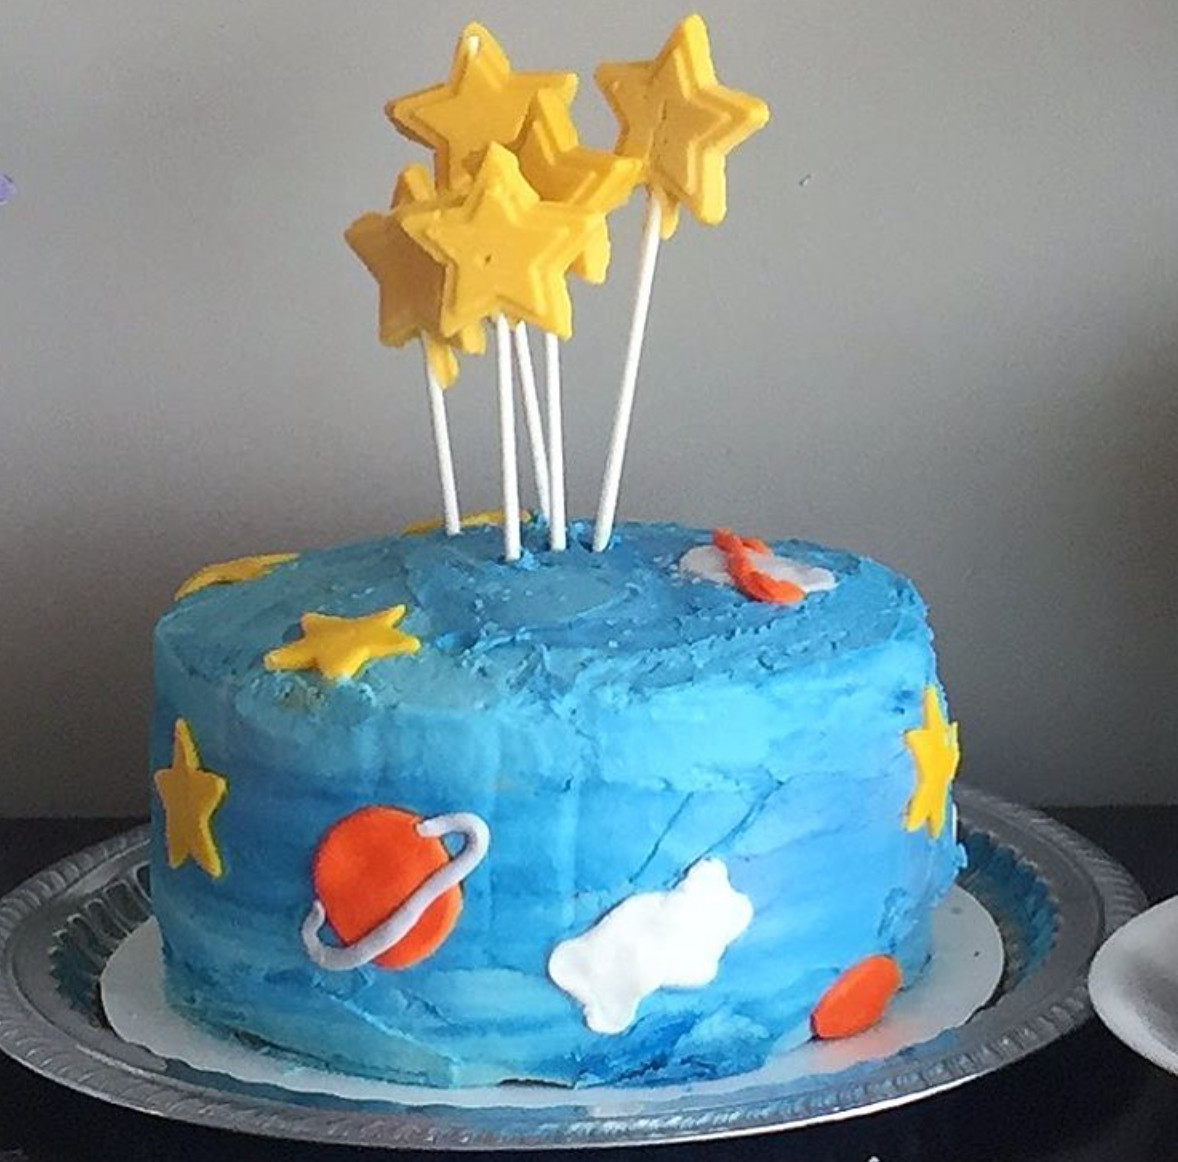 A space-themed vanilla cake is Allie Spector's most recent creation, which she made for a baby shower.